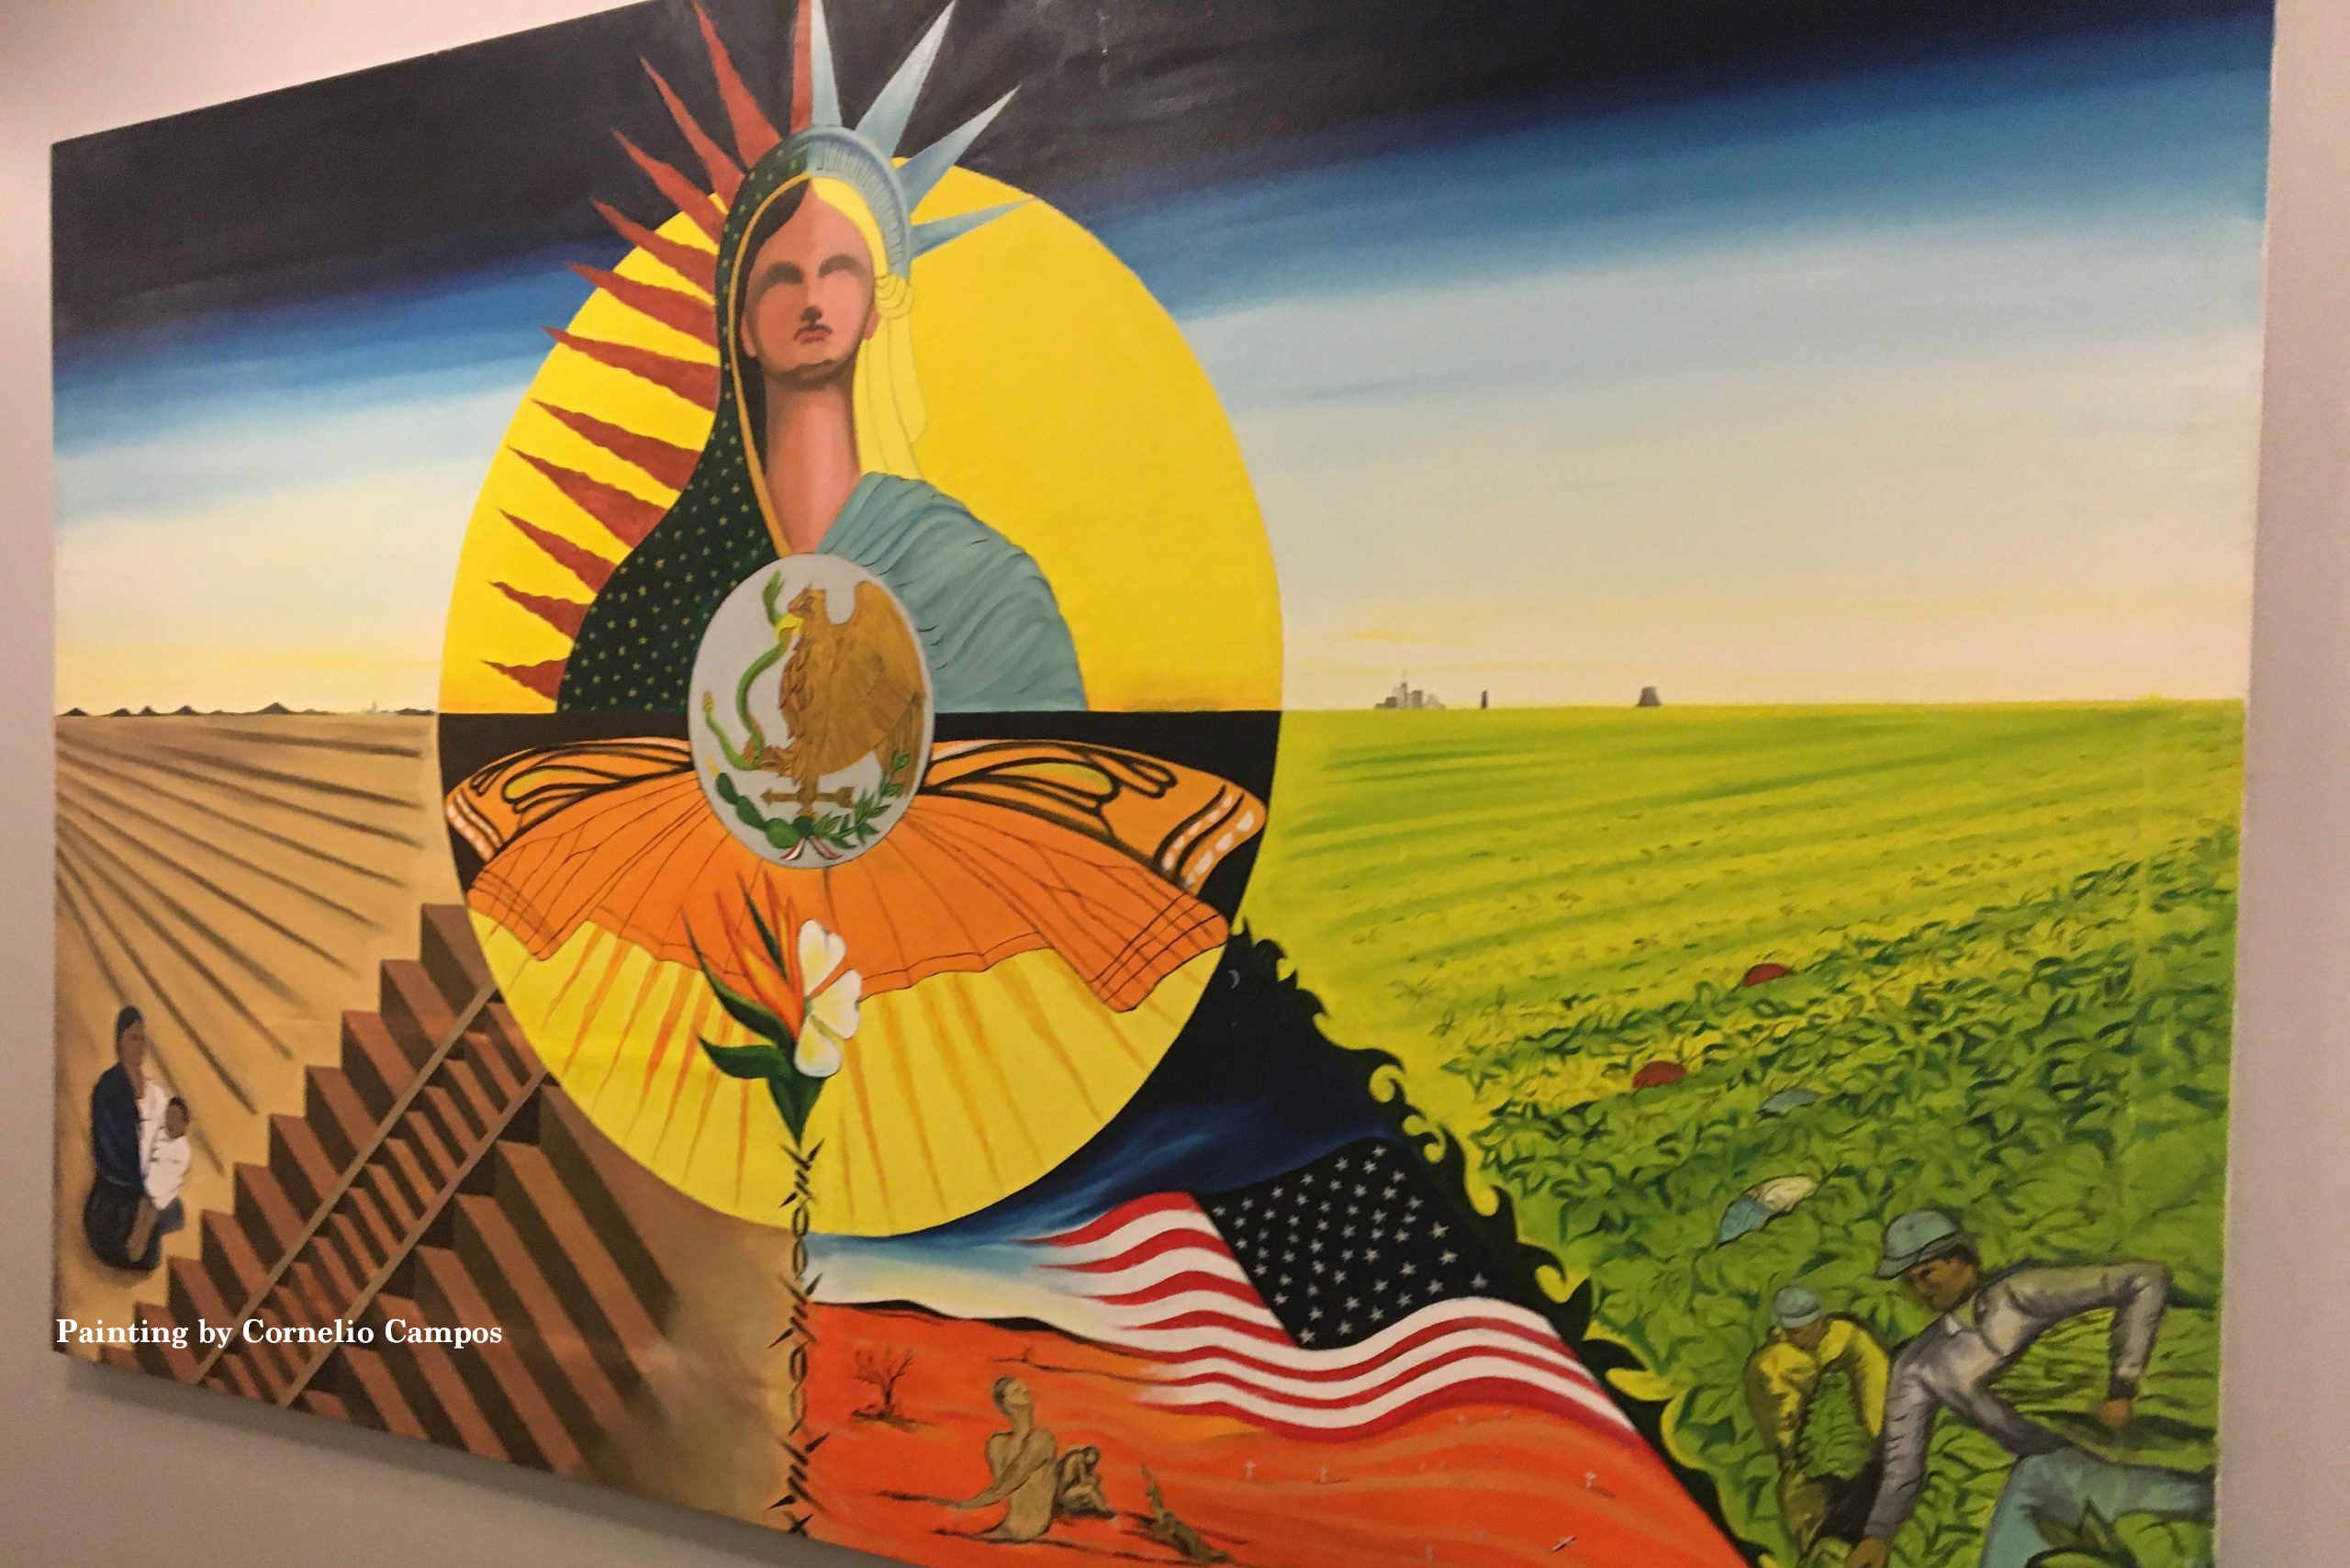 A painting of the Statue of Liberty with images of hispanic life in America and Mexico.